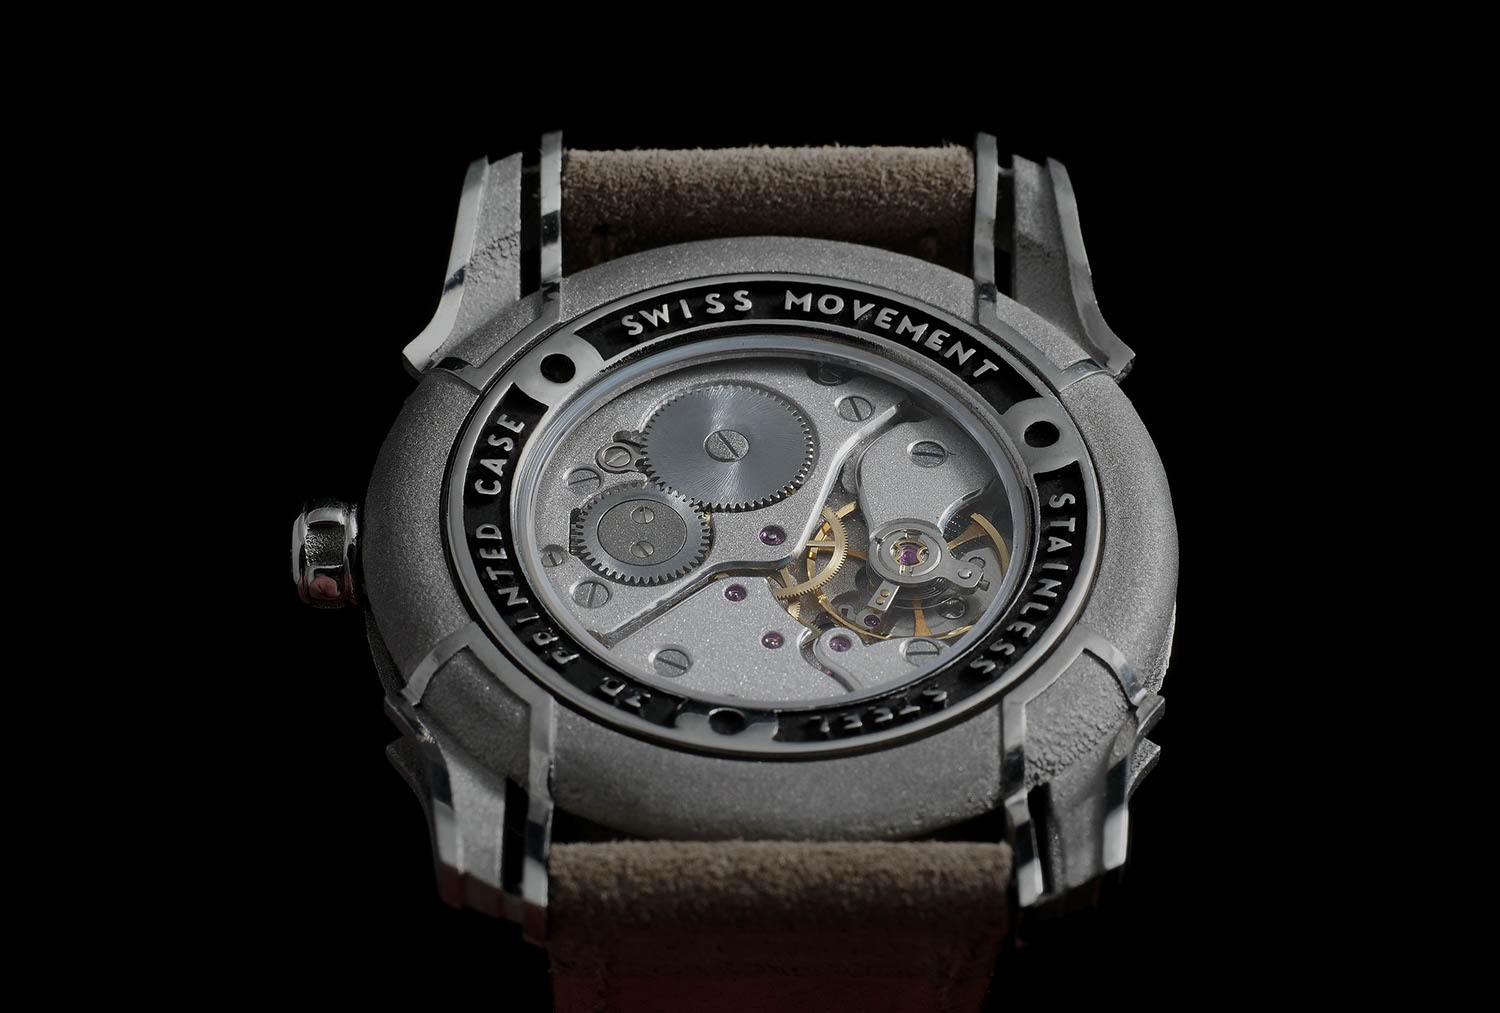 Holthinrichs Watches RAW Ornament seen from the back, showing off the heavily reworked Peseux 7001 manually wound movement powering it